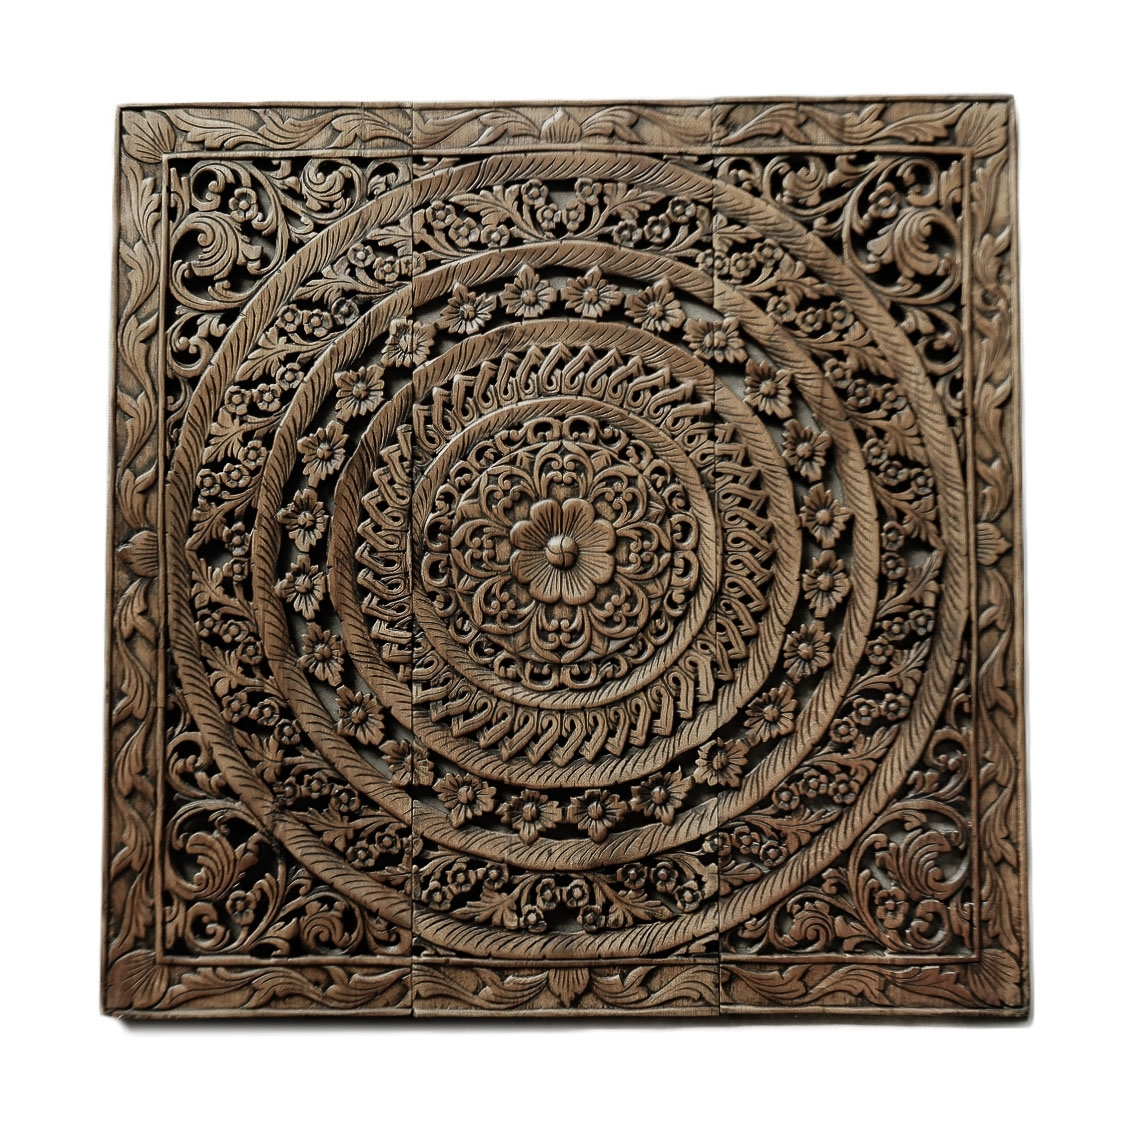 Moroccan Wood Wall Art – Elitflat With Regard To Most Current Moroccan Wall Art (Gallery 8 of 20)